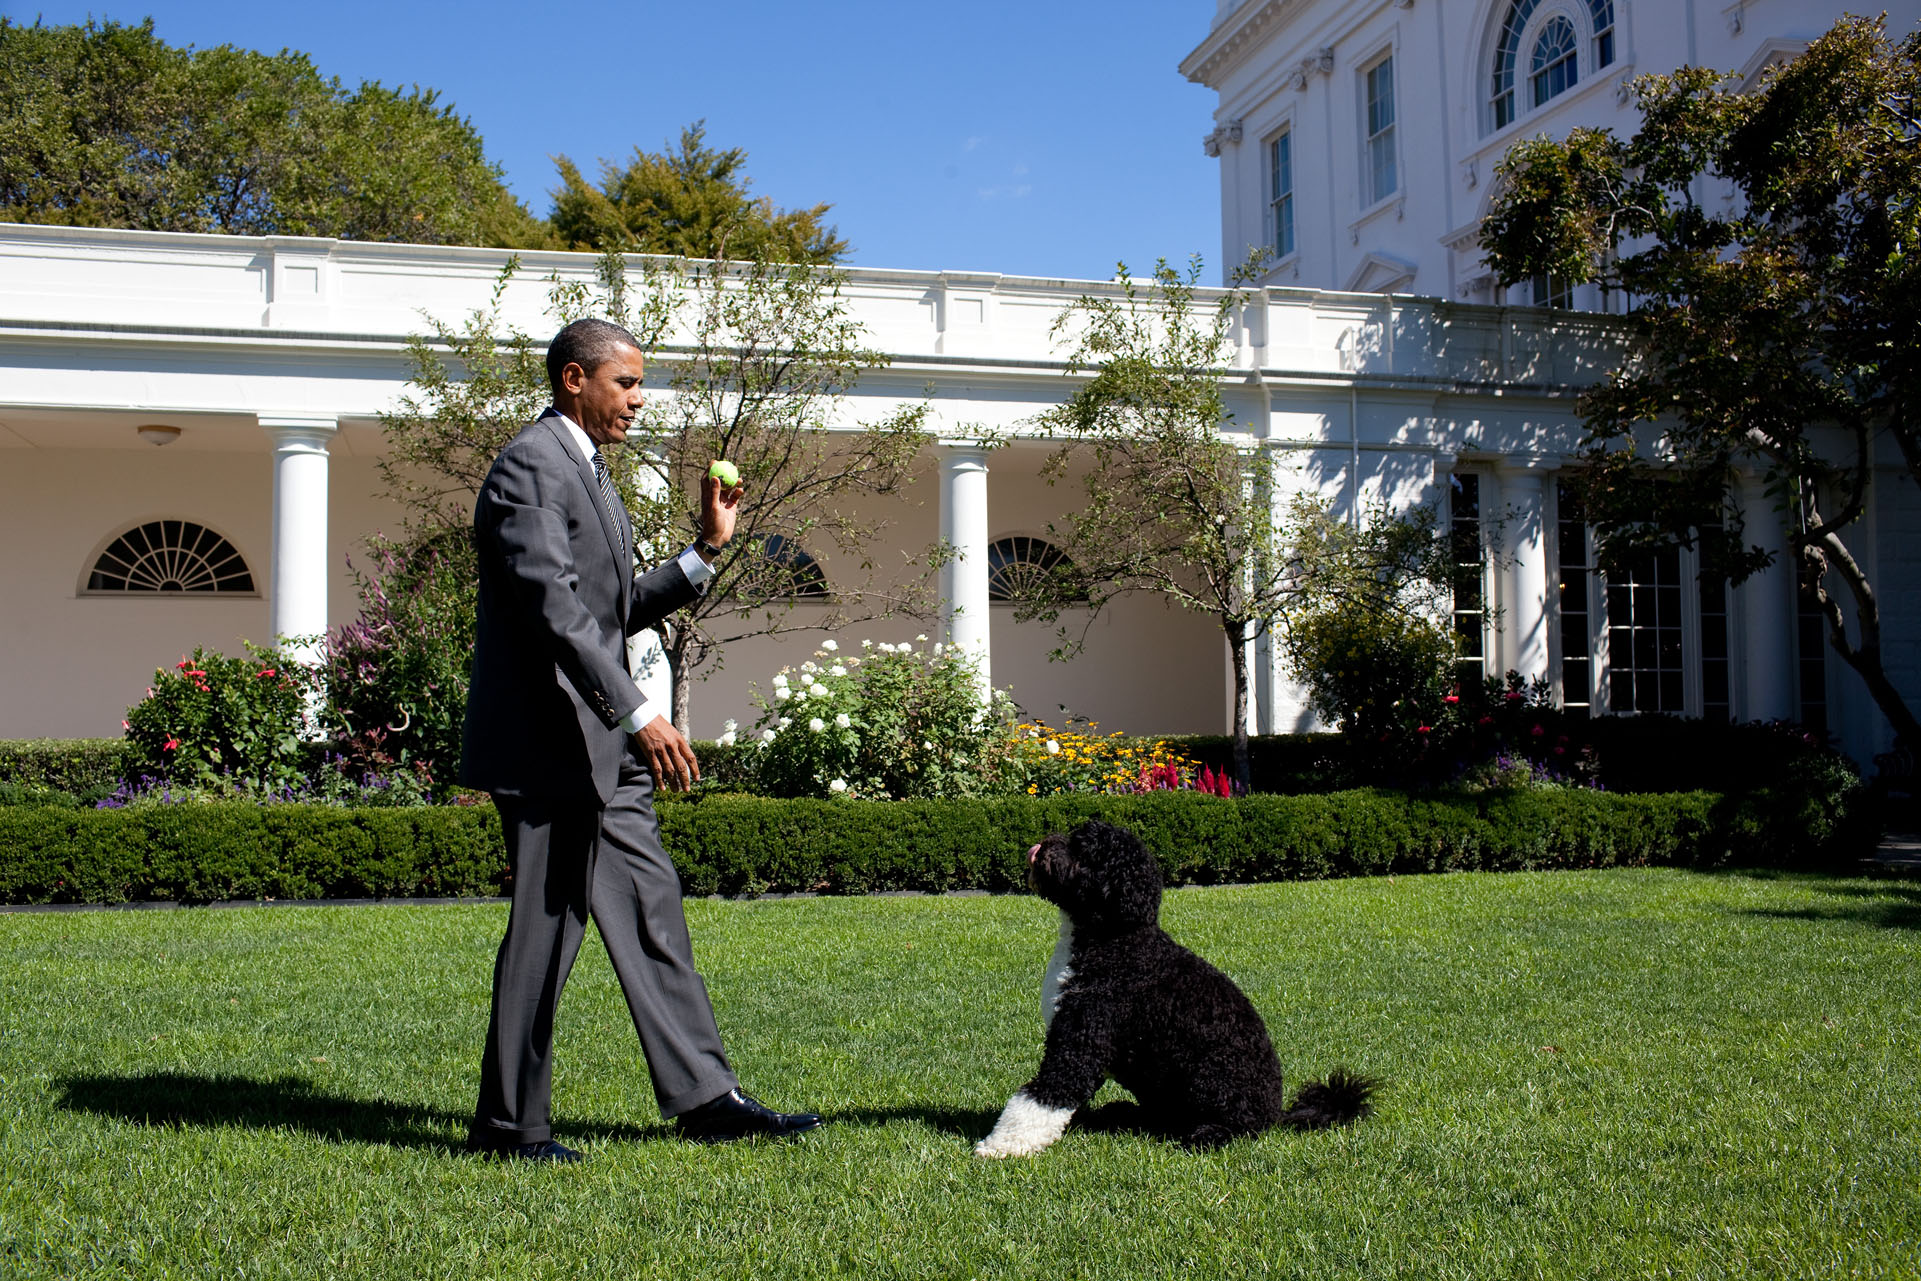 The President Throws Bo the Ball